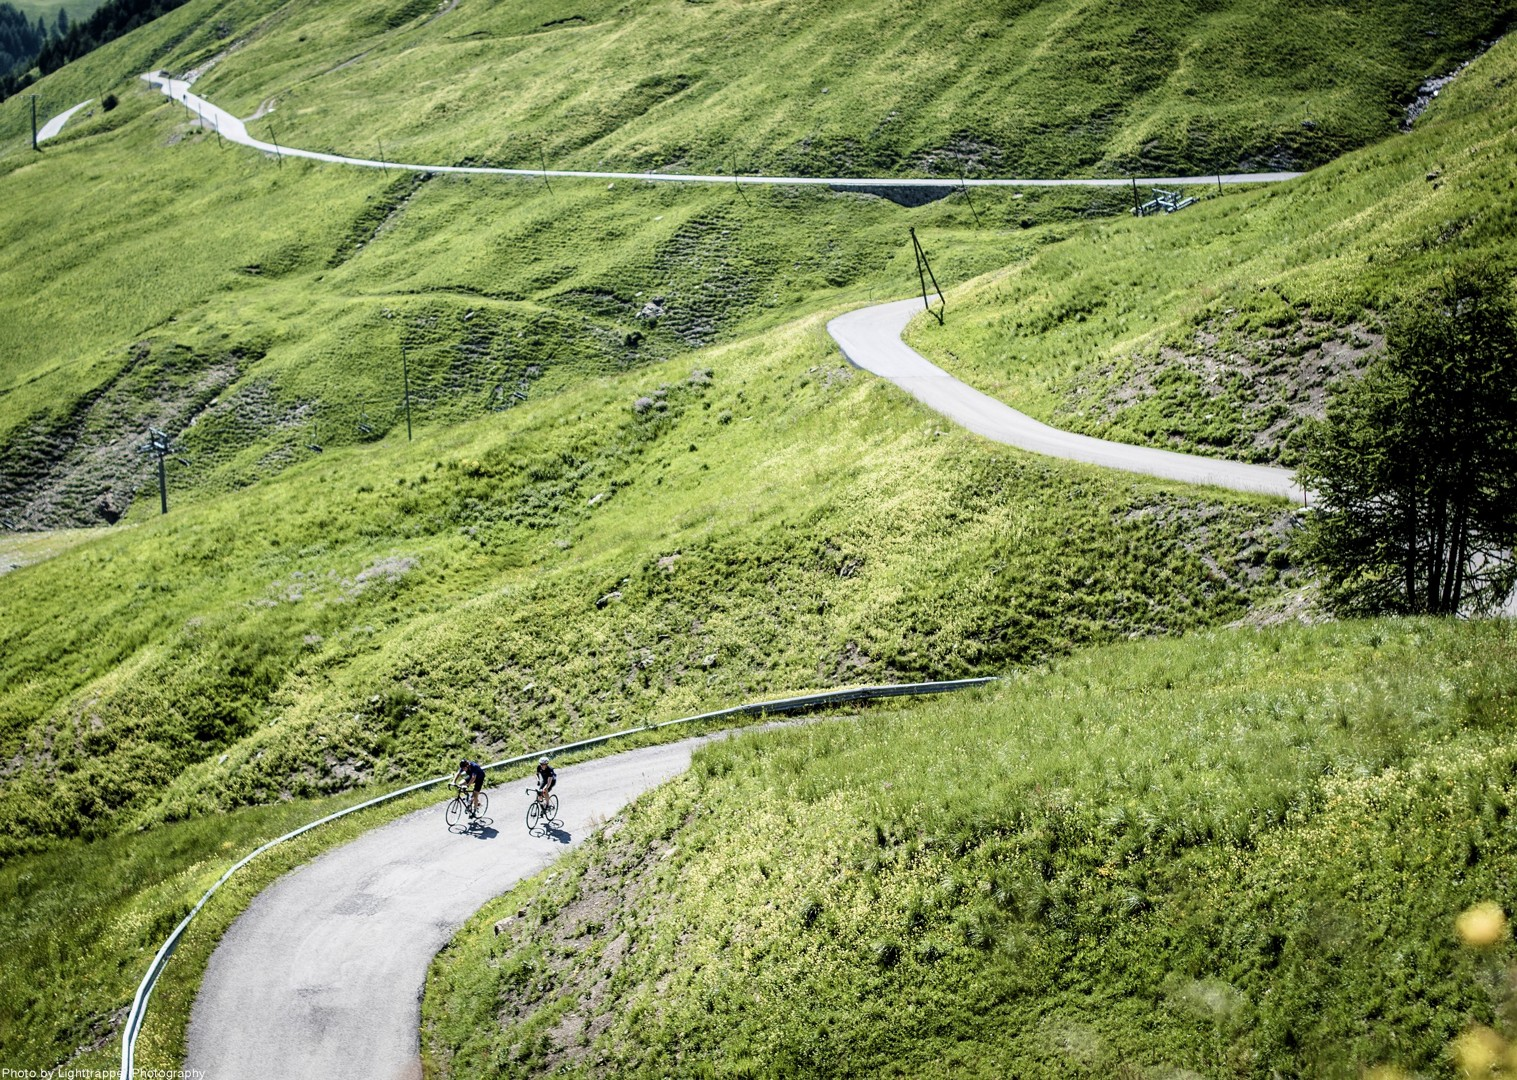 downhill-ride-on-bike-climbs-france-holiday.jpg - France - Provence - Alpes Maritimes - Guided Road Cycling Holiday - Road Cycling